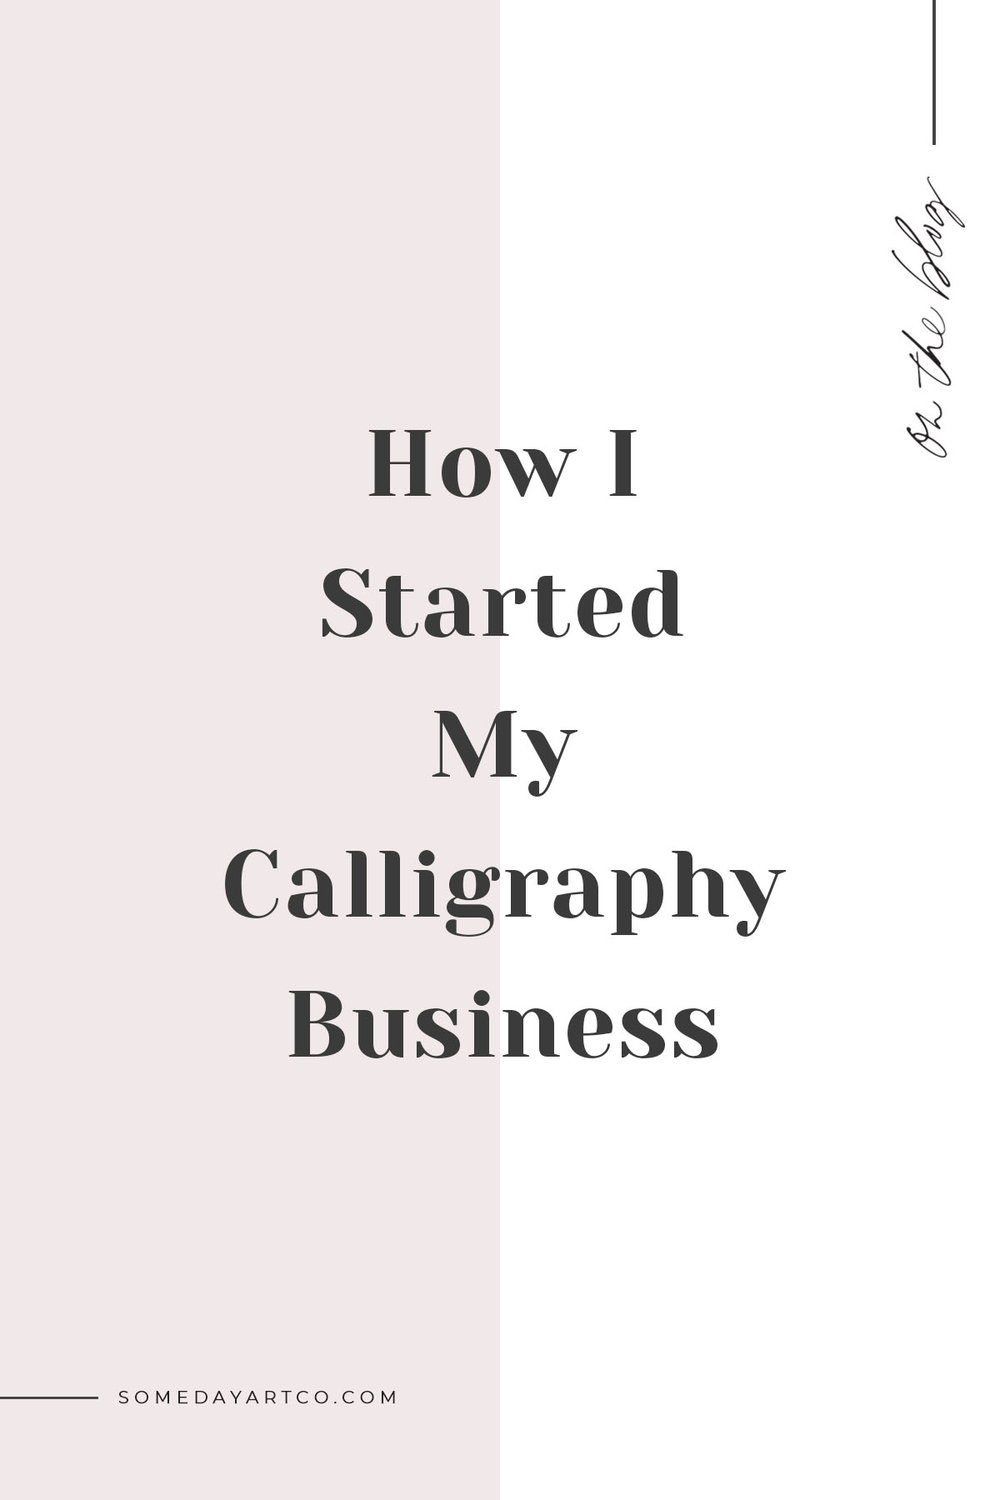 How_To_Start_A_Calligraphy_Business.jpg